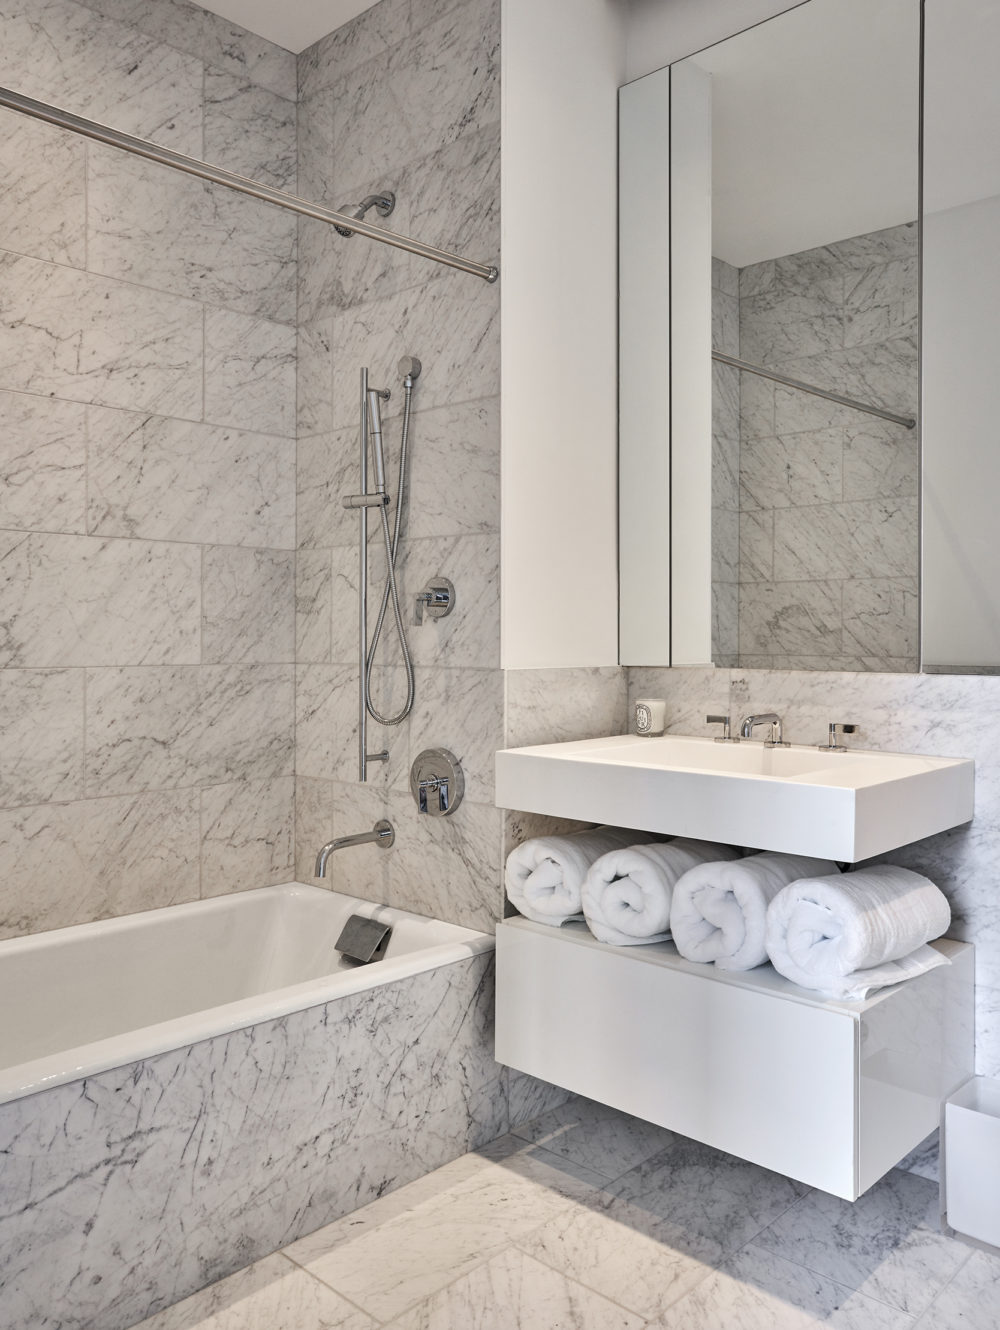 White marble bathroom in the Park Loggia condominiums in New York City. White vanity and tall mirror with shower & tub combo.